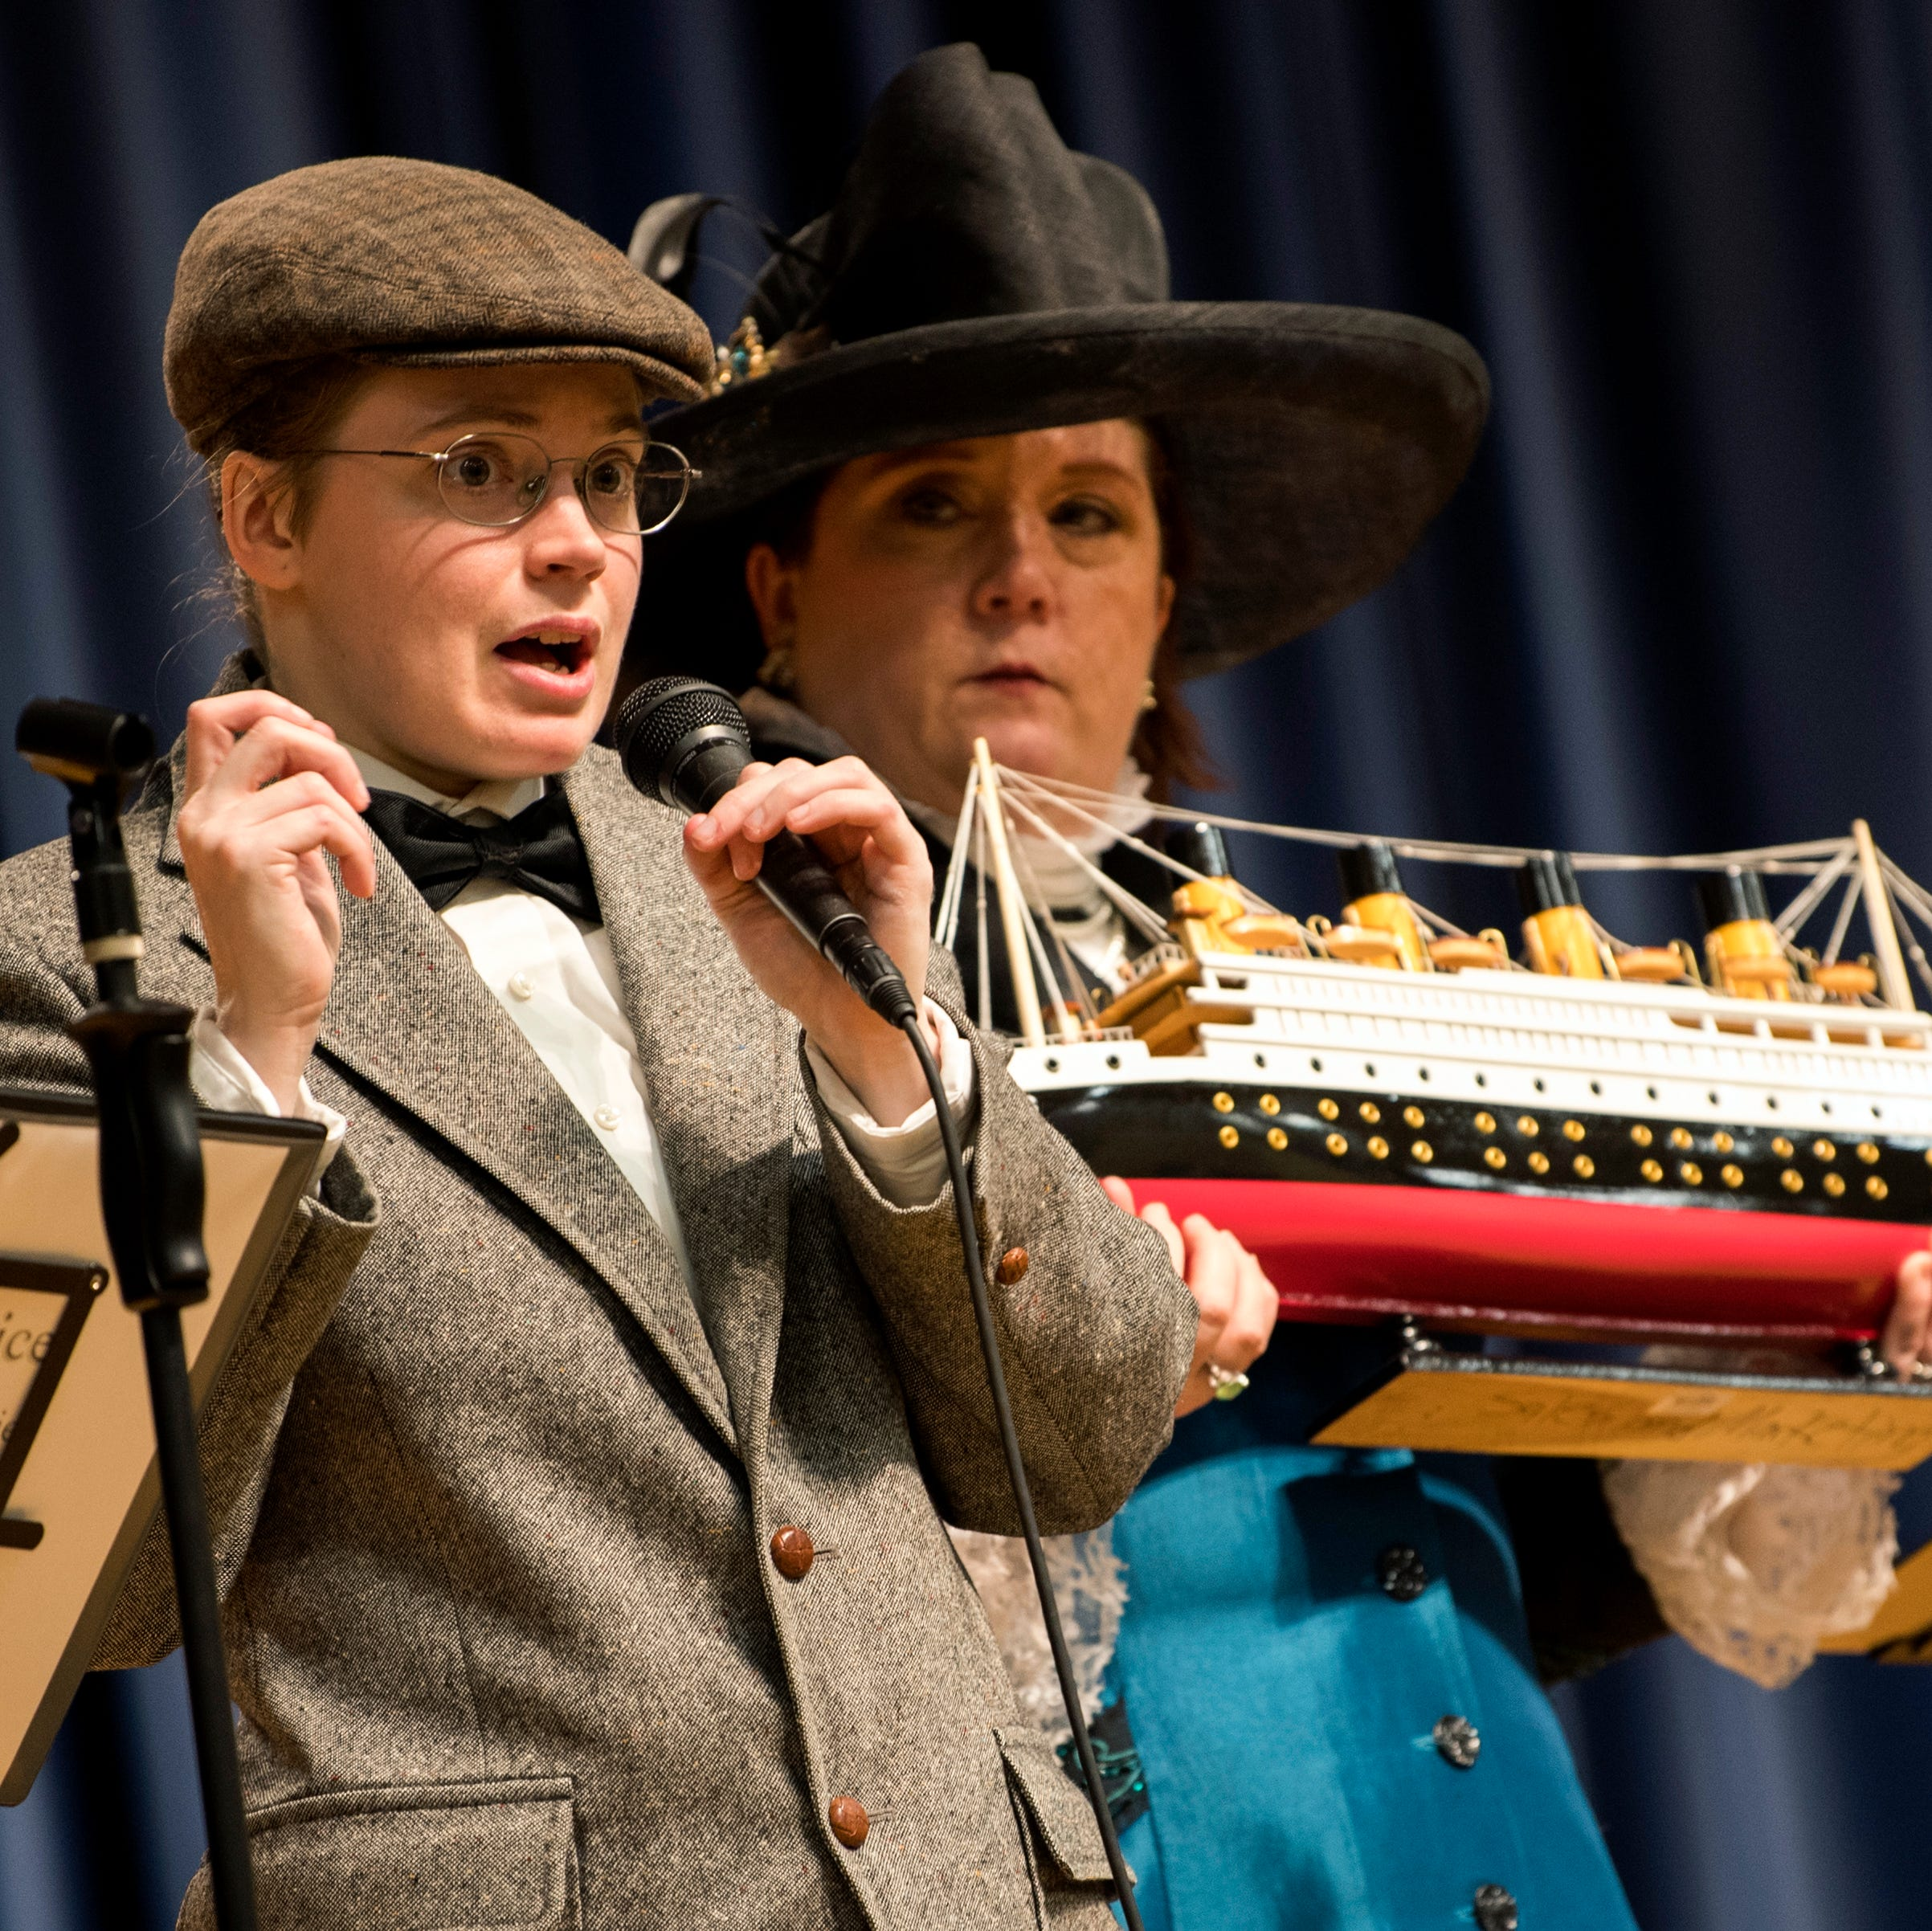 Near, far, wherever kids are: Virtual tours, in-school theater part of Titanic Museum program